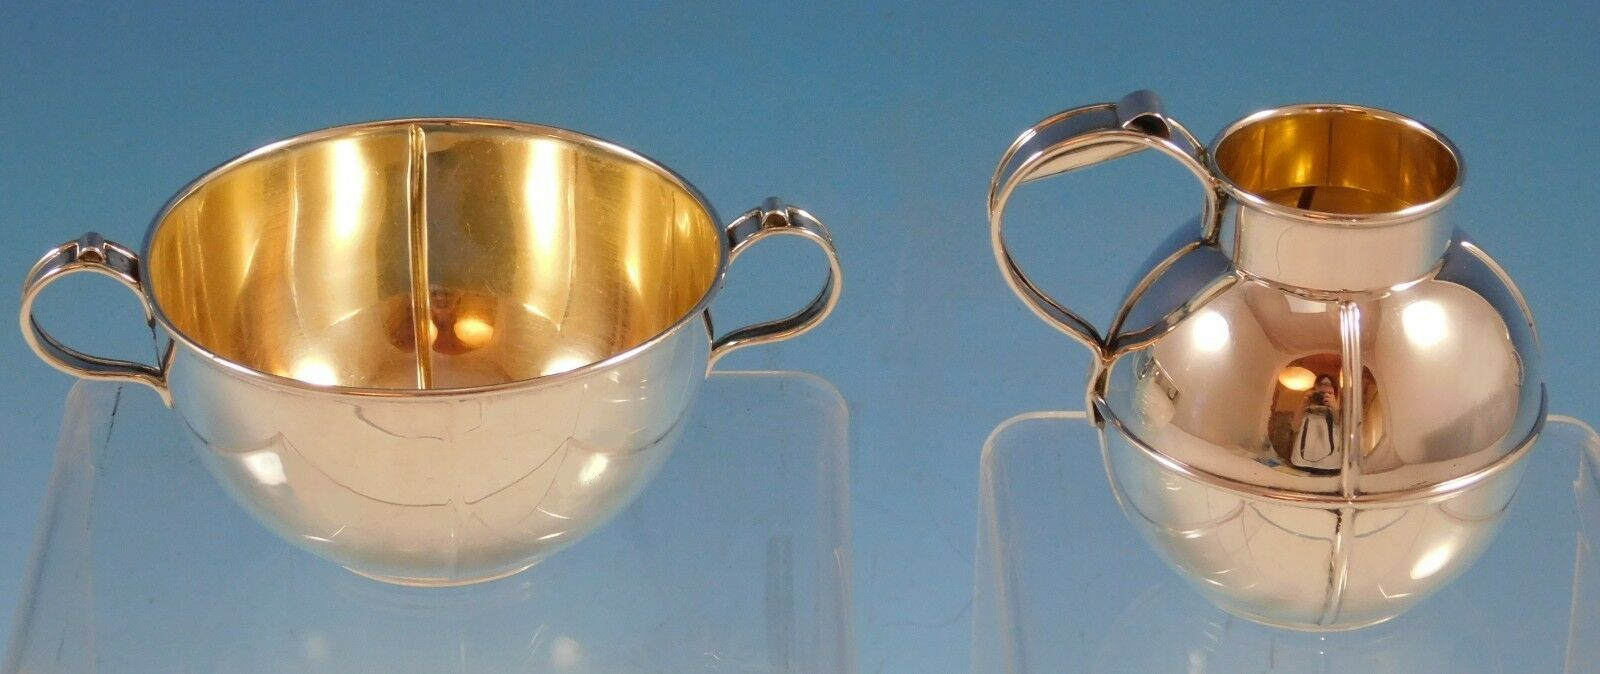 Old French Gorham Sterling Silver Creamer and Sugar Set 2pc #A7845 (#2286) - $260.10